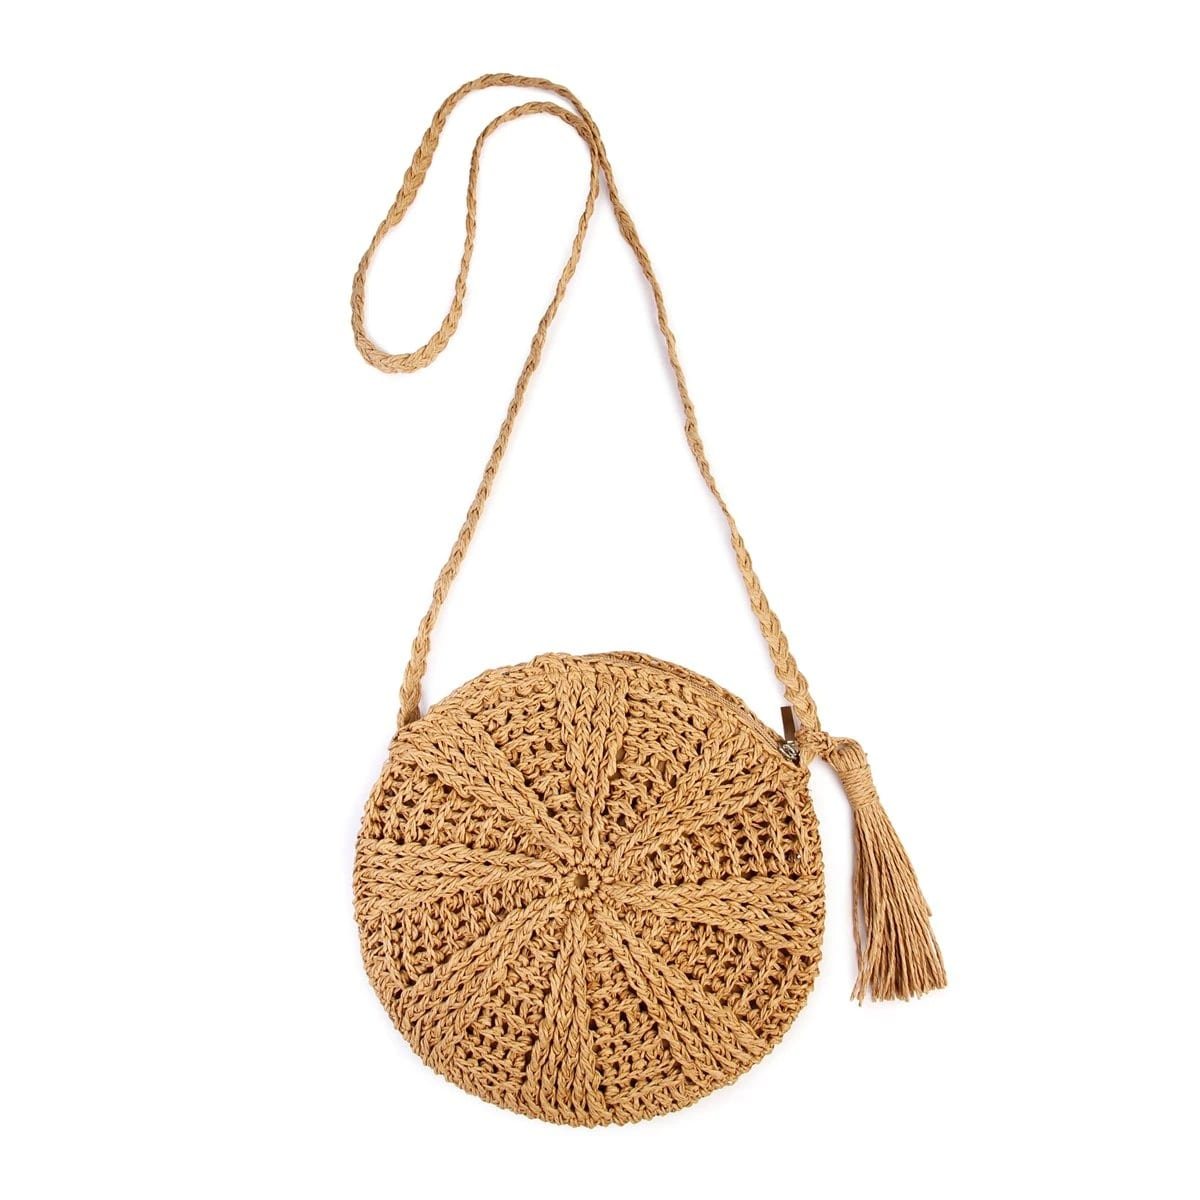 How much native straw backpack